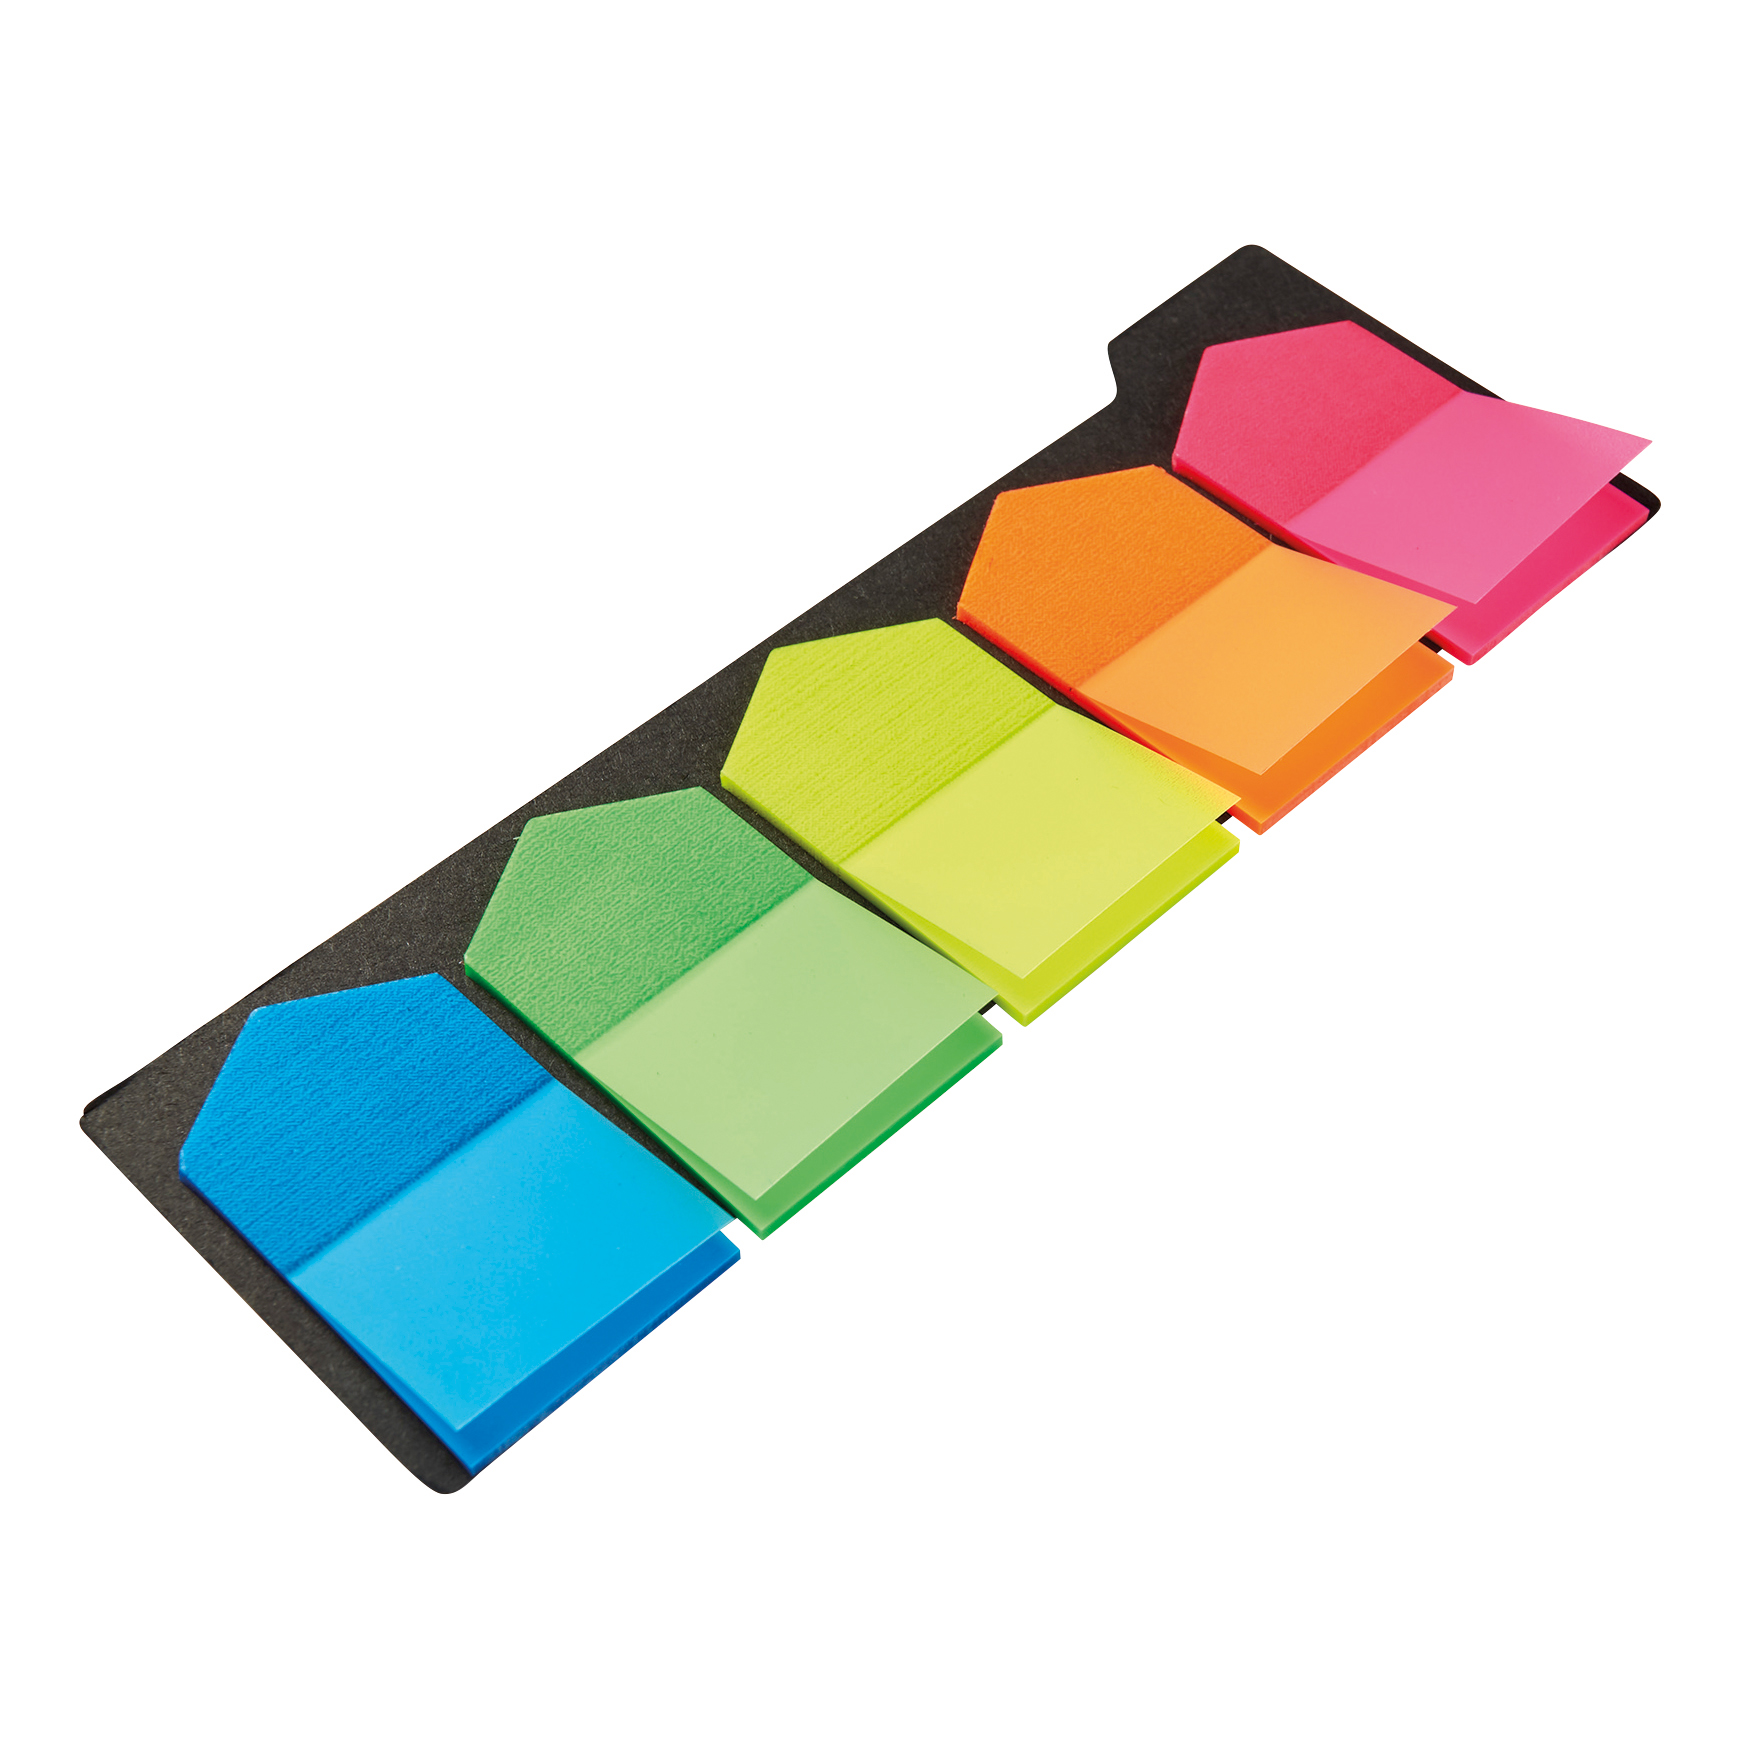 5 Star Office Index Arrow 5 Bright Colours 12x42mm 5 Packs of 20 Flags [100 Flags]